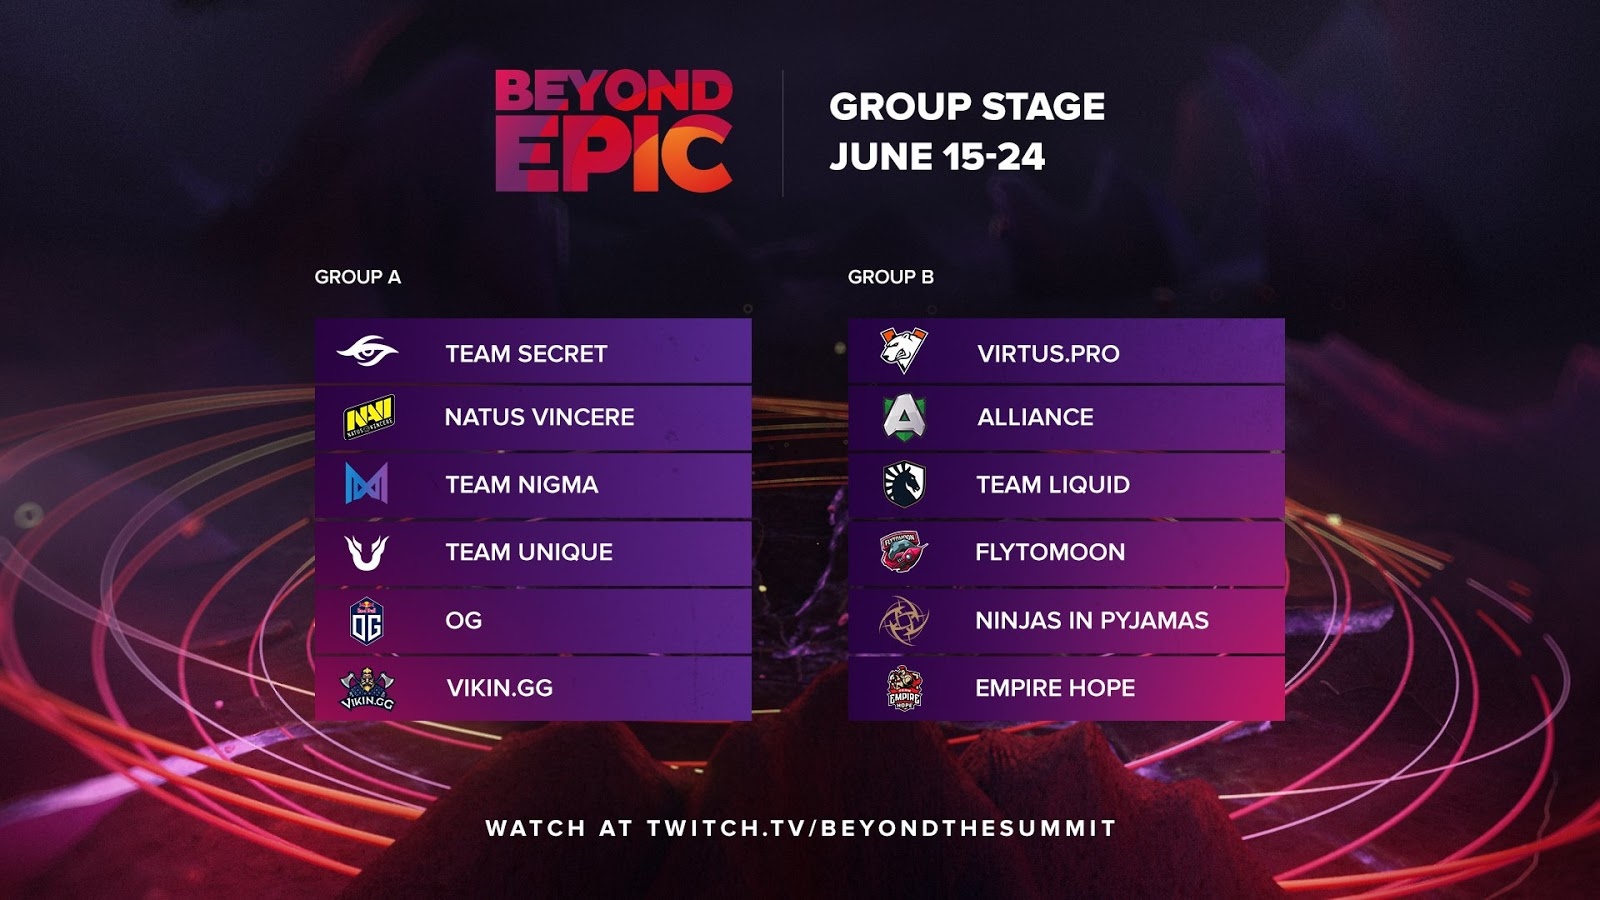 beyond epic teams